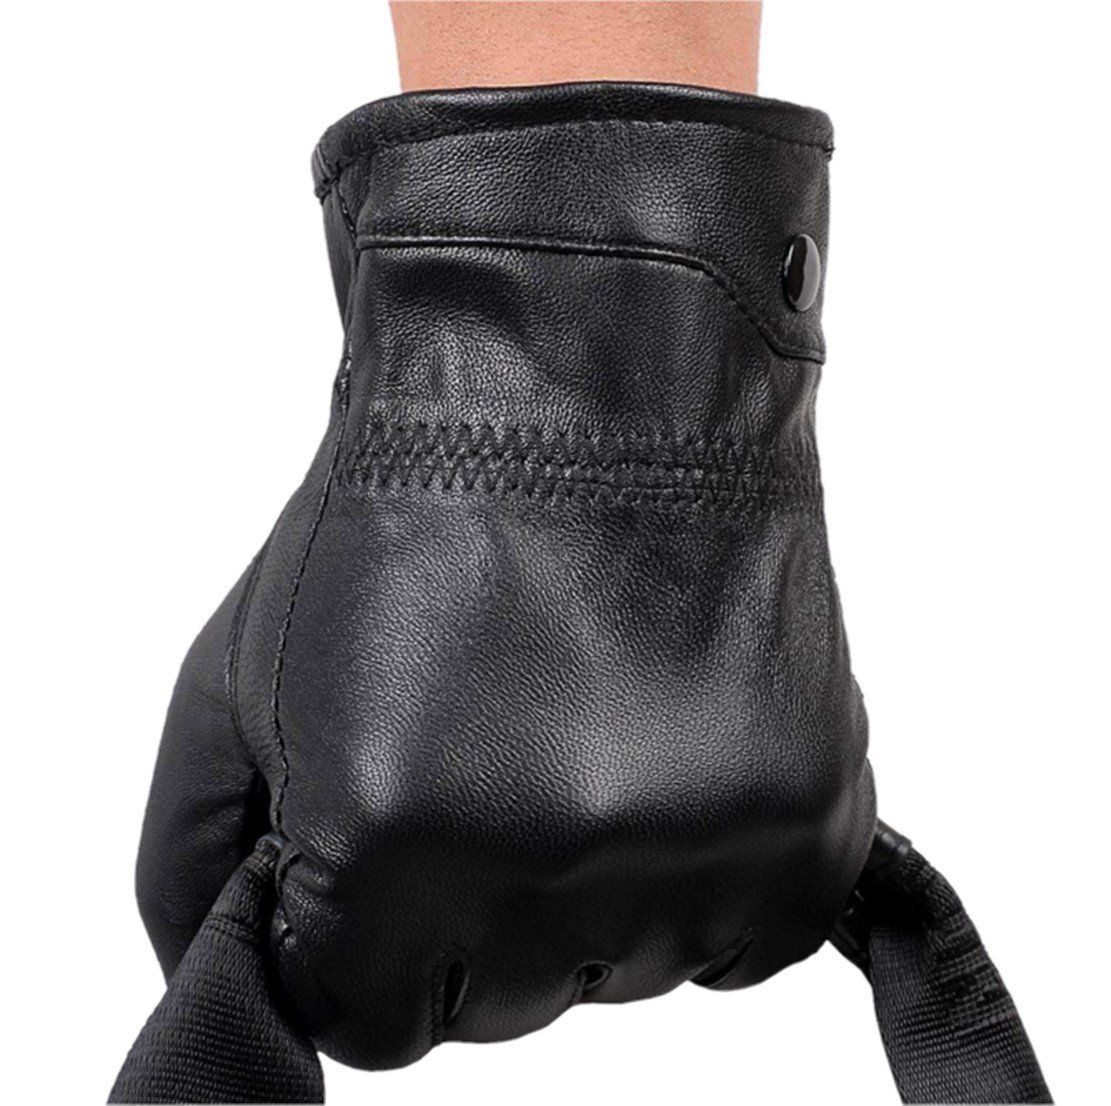 West Leathers Men's Lambskin Leather Gloves Driving Drive/work/motorcycle